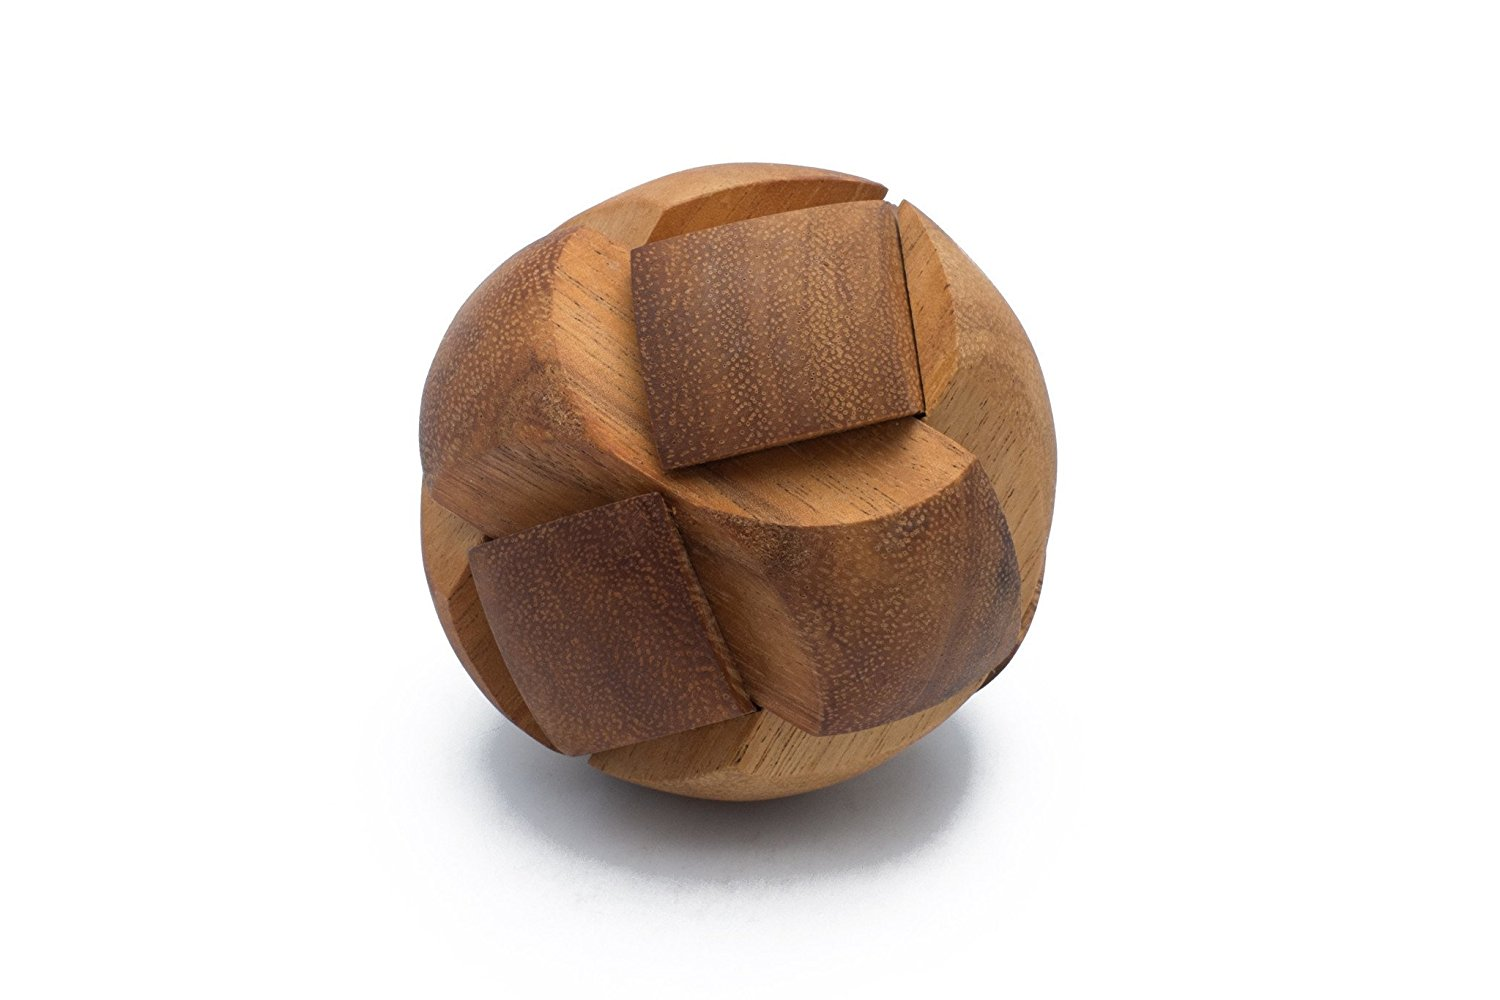 SiamMandalay: 3D Brain Teaser: Pulsar - Wooden Interlocking Mechanical Puzzle &